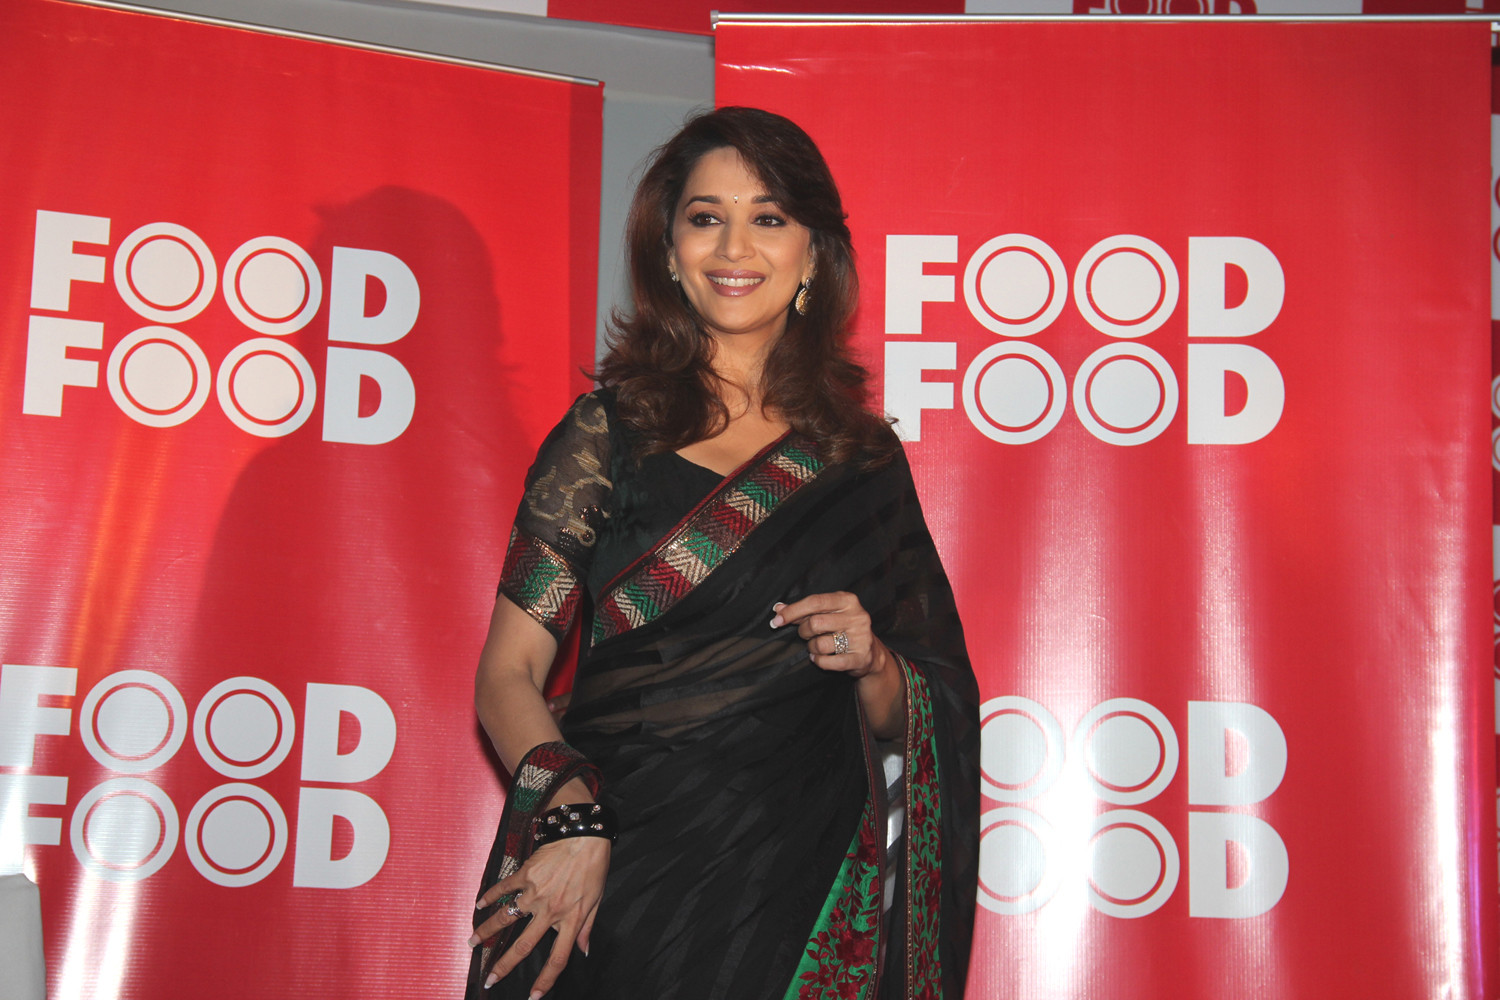 Madhuri Dixit Ever gorgeousness HQ Unwatermarked images AcyzaH7r